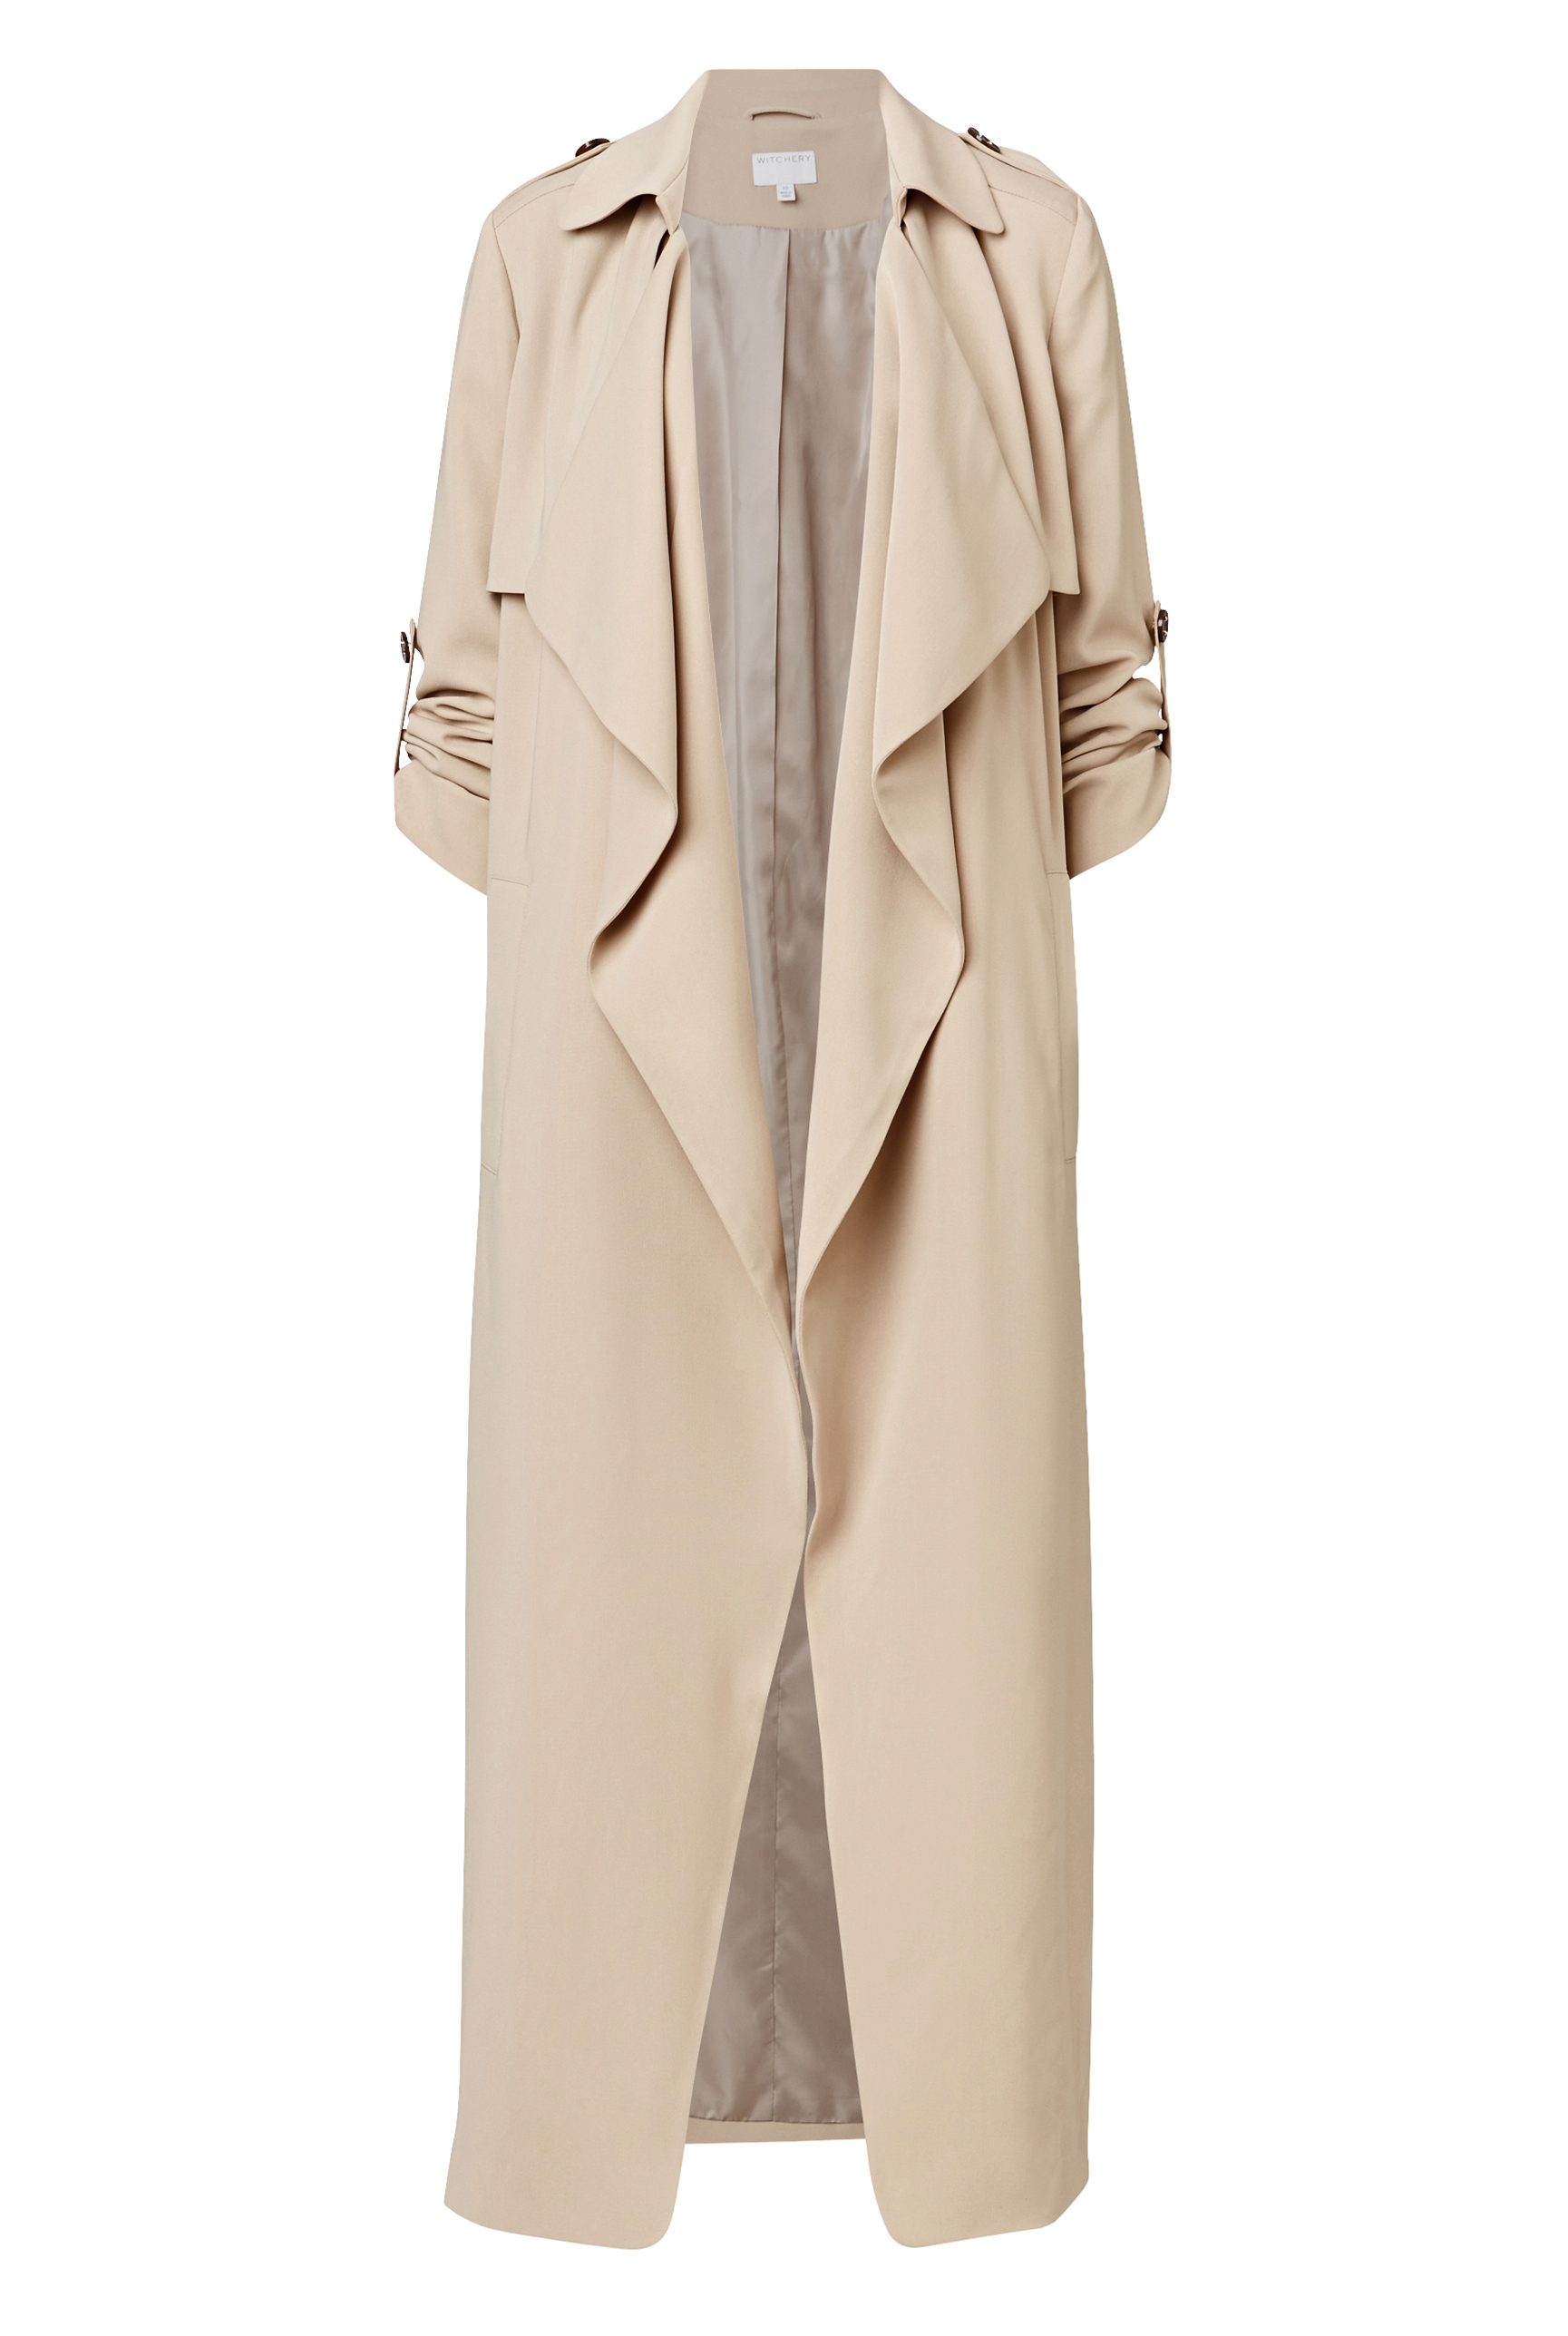 60197714_Witchery Duster Jacket, RRP $299.90